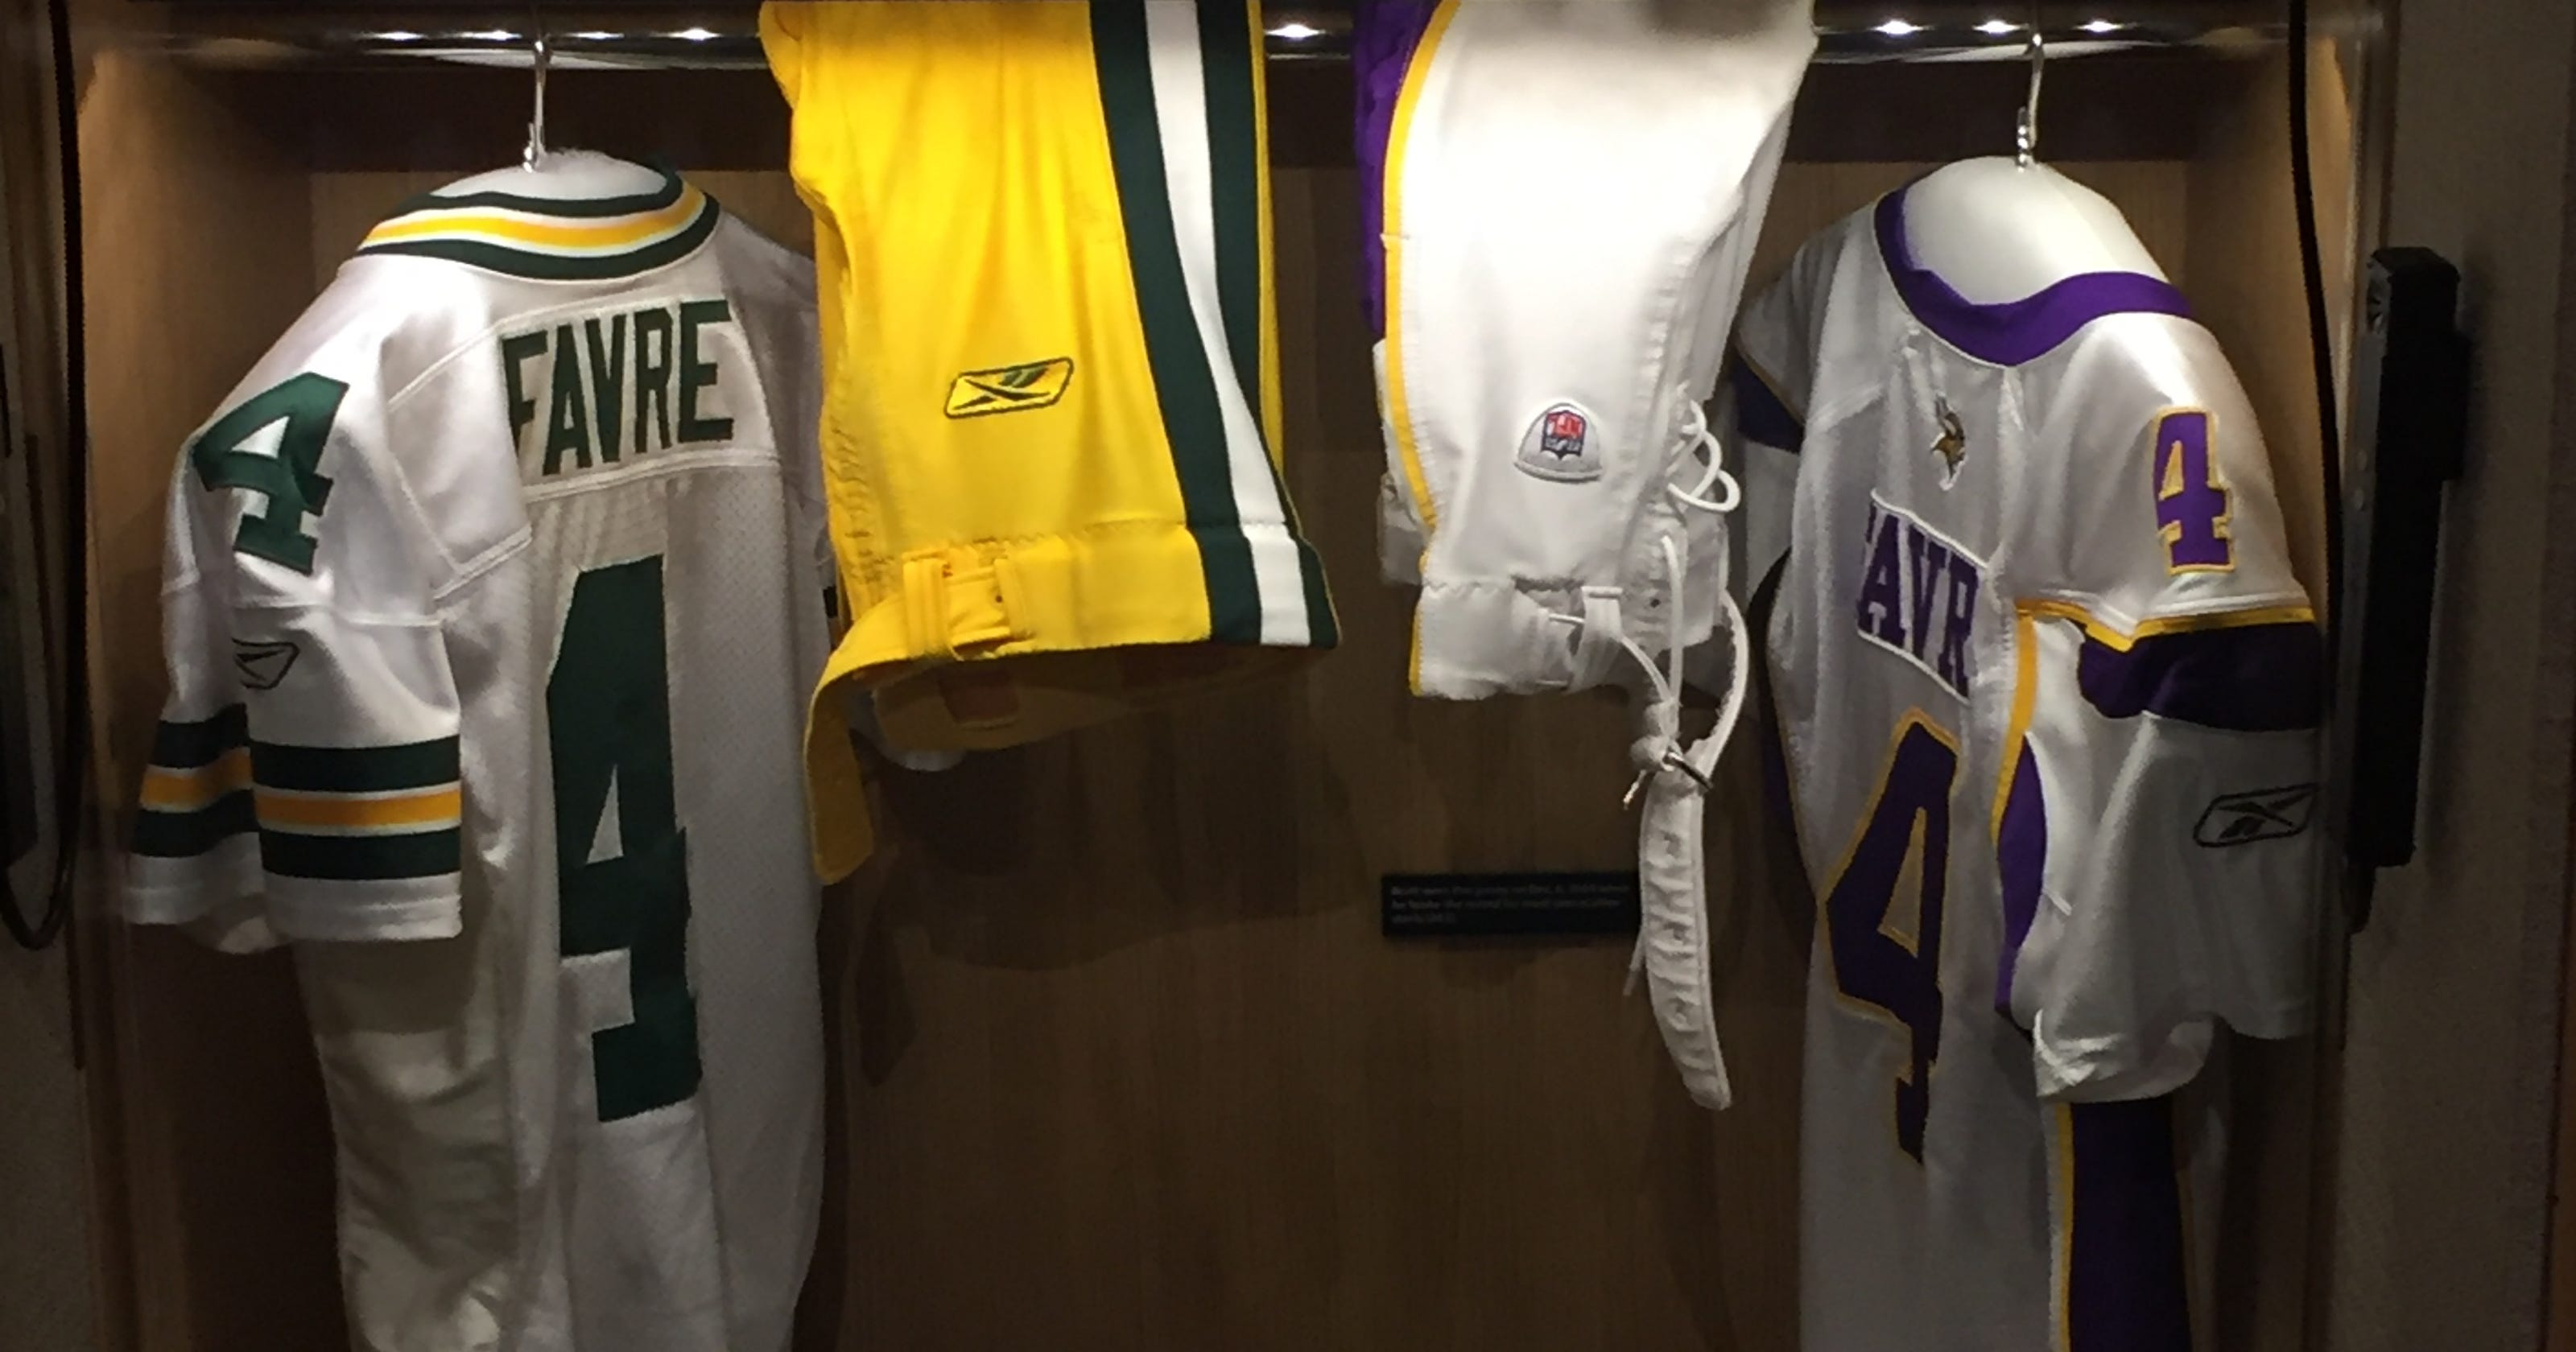 buy online 4e26b a4abf Favre didn't know about Packers,Vikings jerseys in Hall display